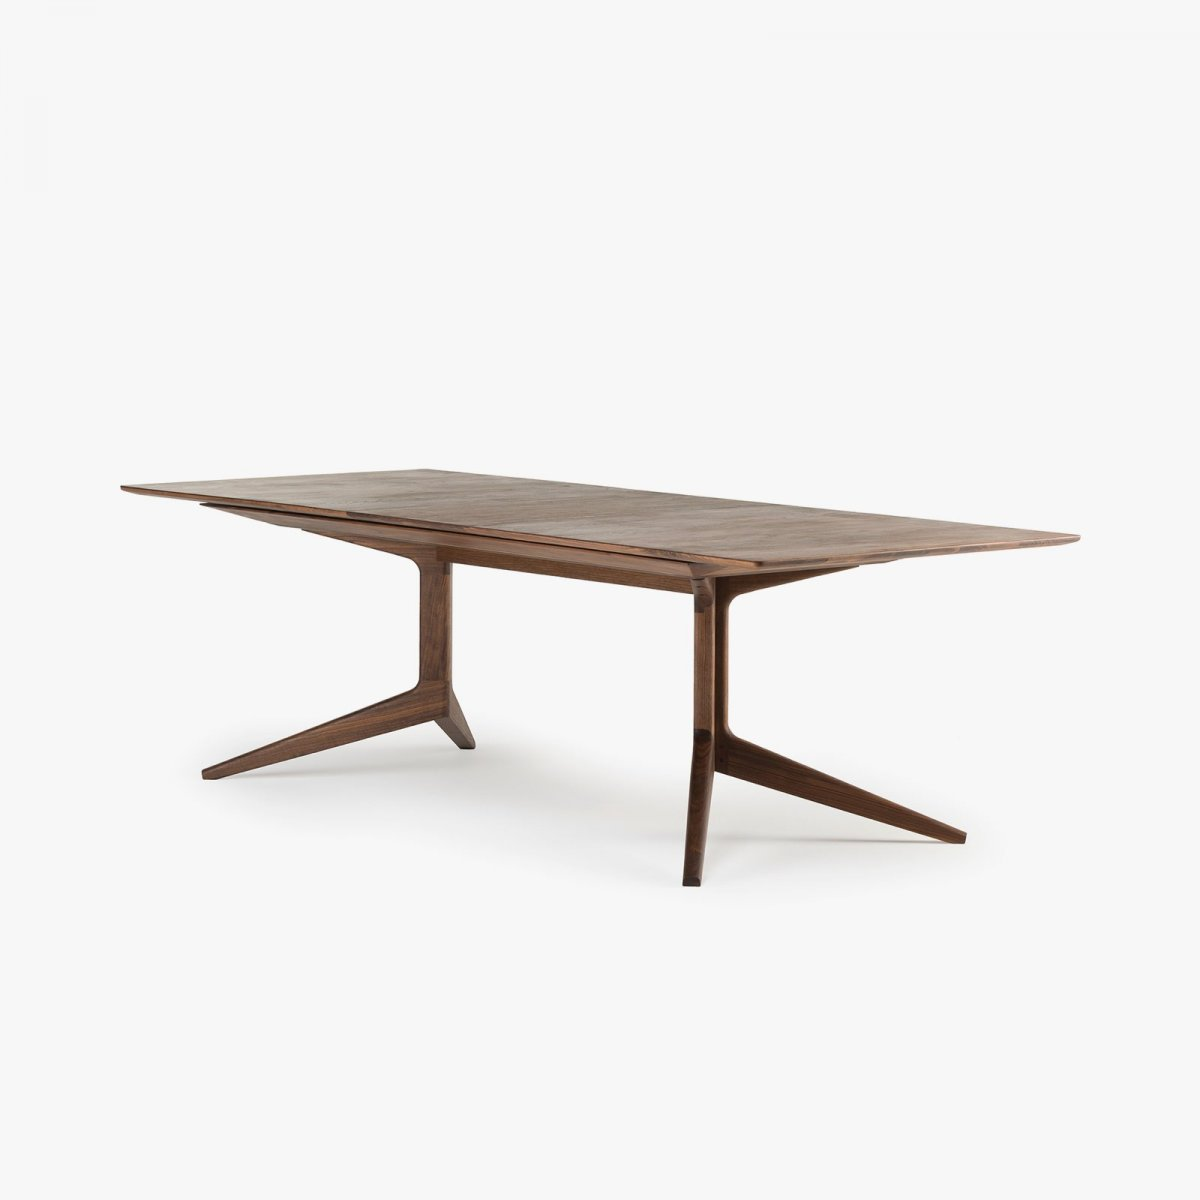 341E Light Extending Table in Danish oiled walnut.